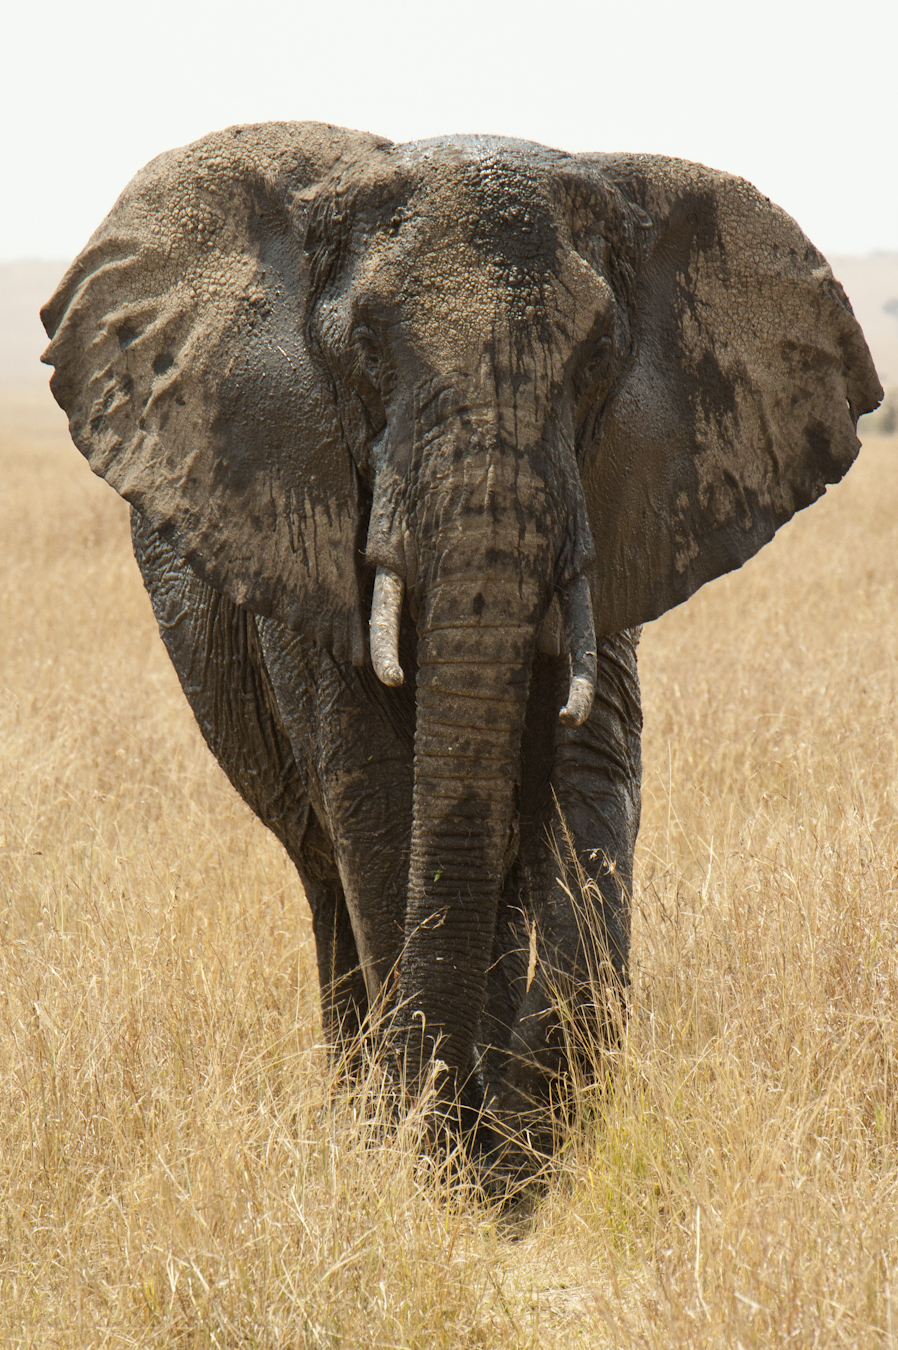 An elephant gives us the full Monte